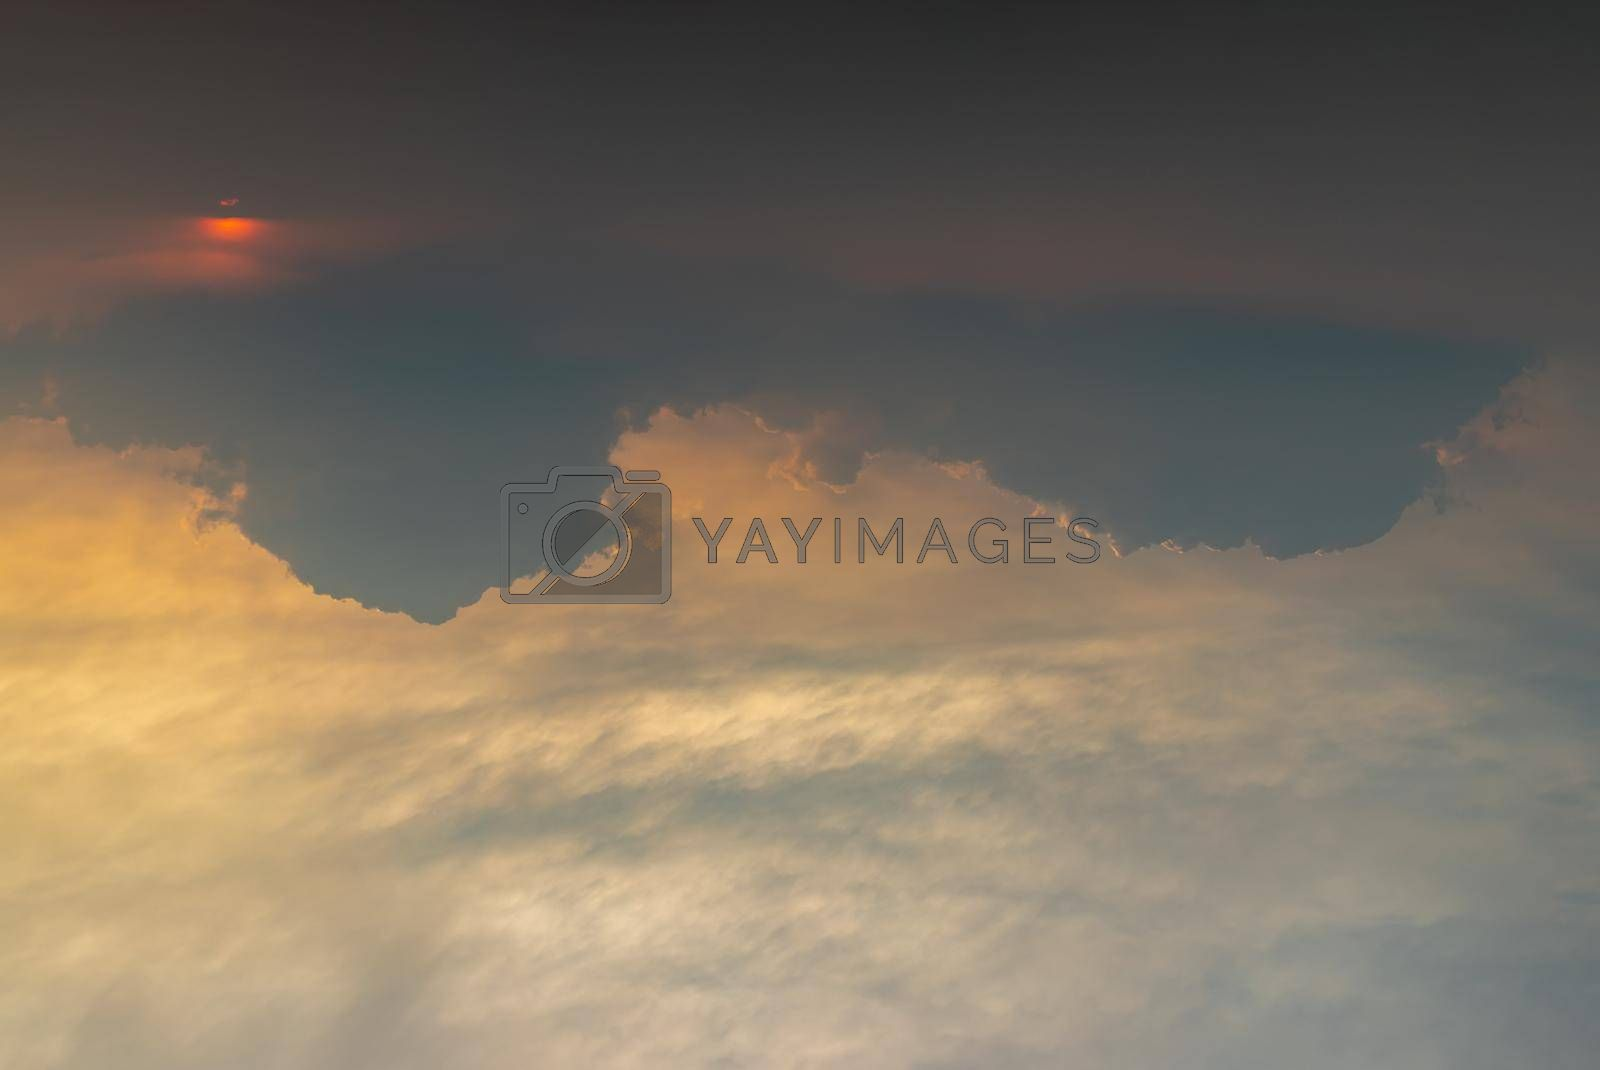 Beautiful sunset sky above clouds with dramatic light, Beautiful blazing sunset landscape, Horizon. Warm Colours, copy space, No focus, specifically.